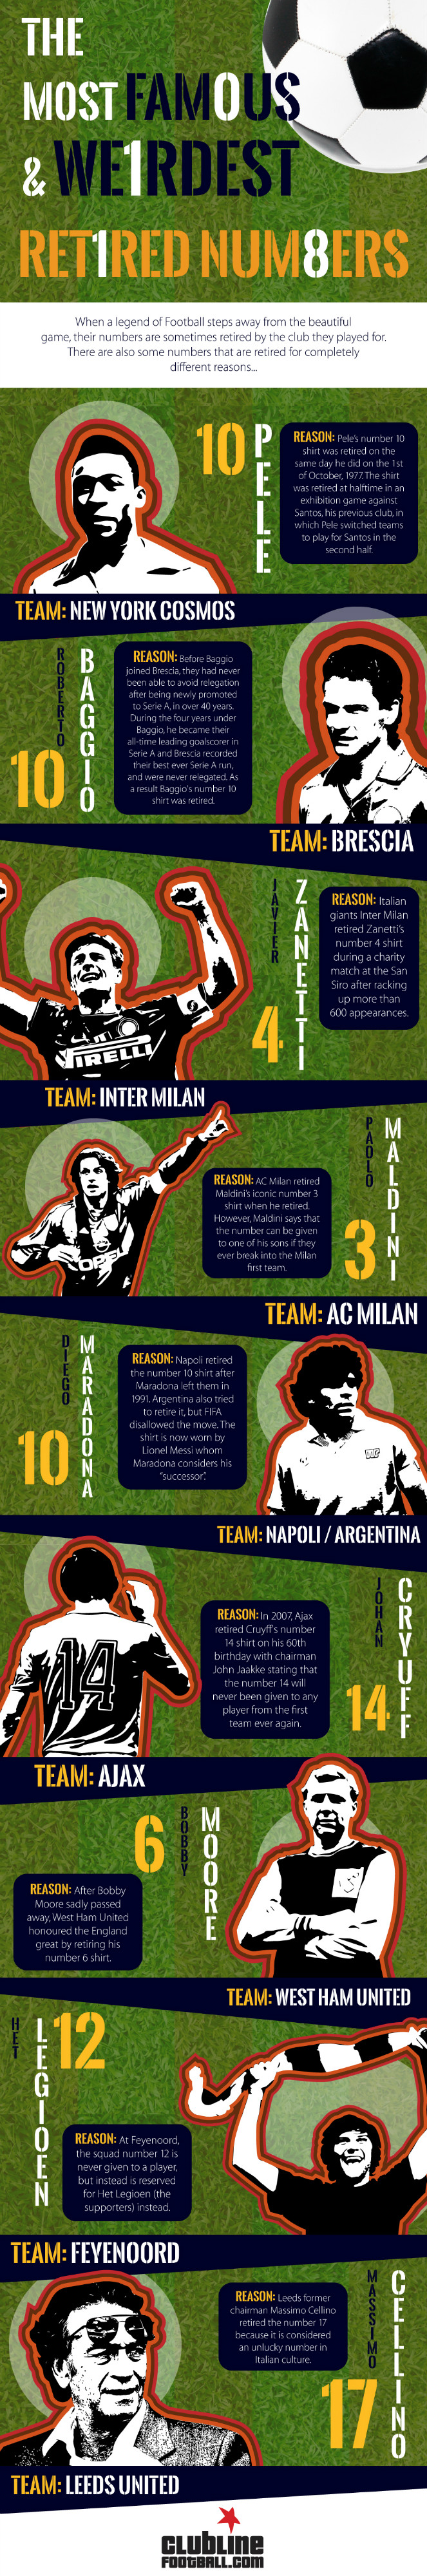 The Most Famous And Weirdest Retired Numbers [Infographic]